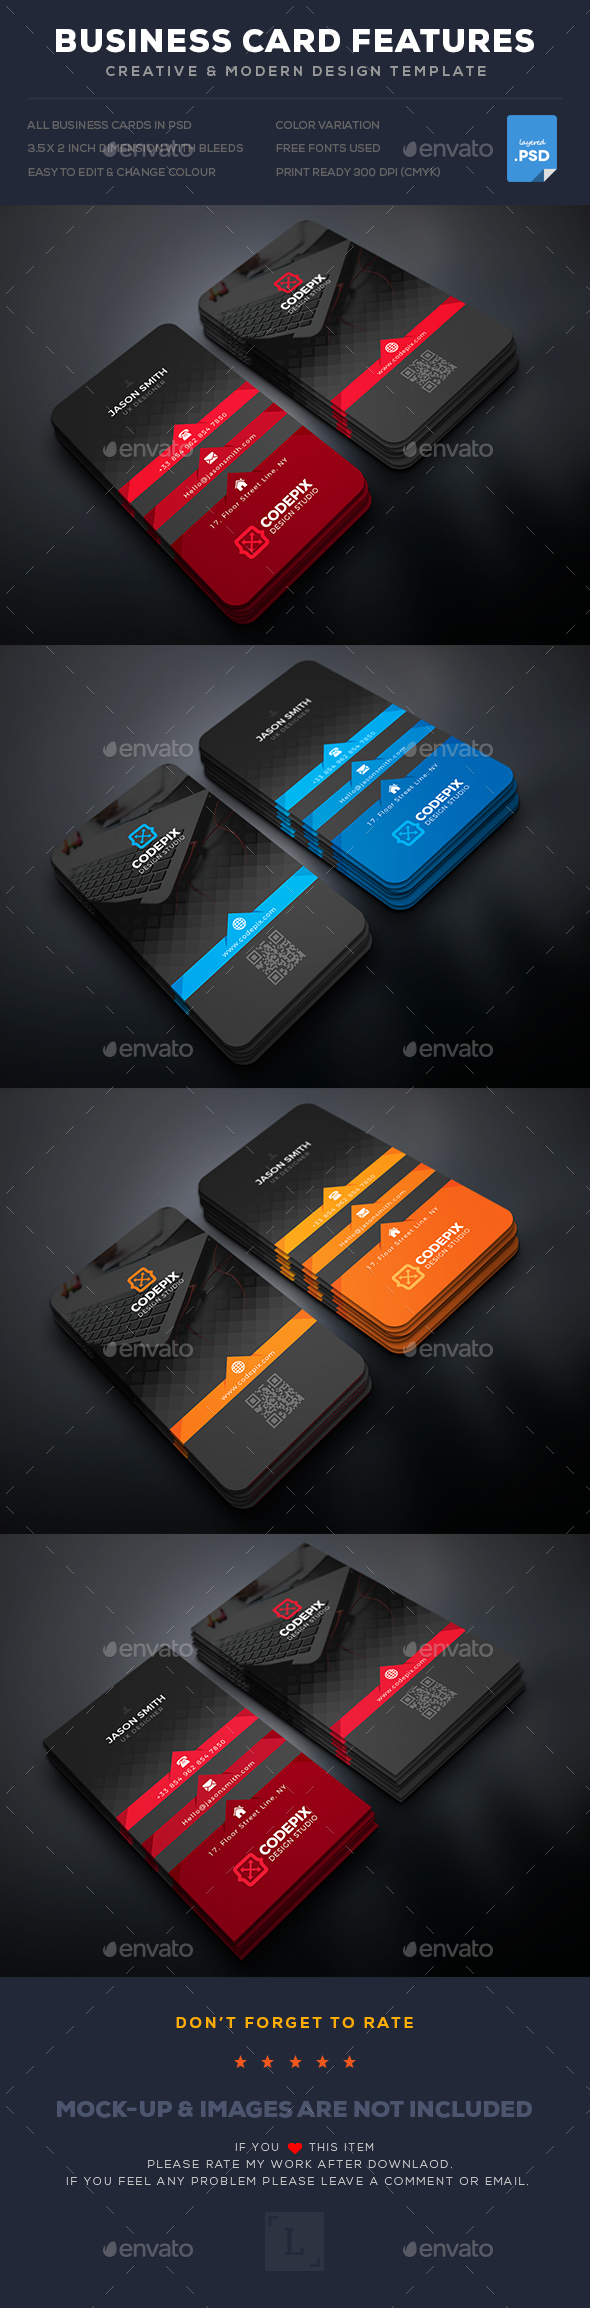 Graphicriver Business Cards 19275508 torrent